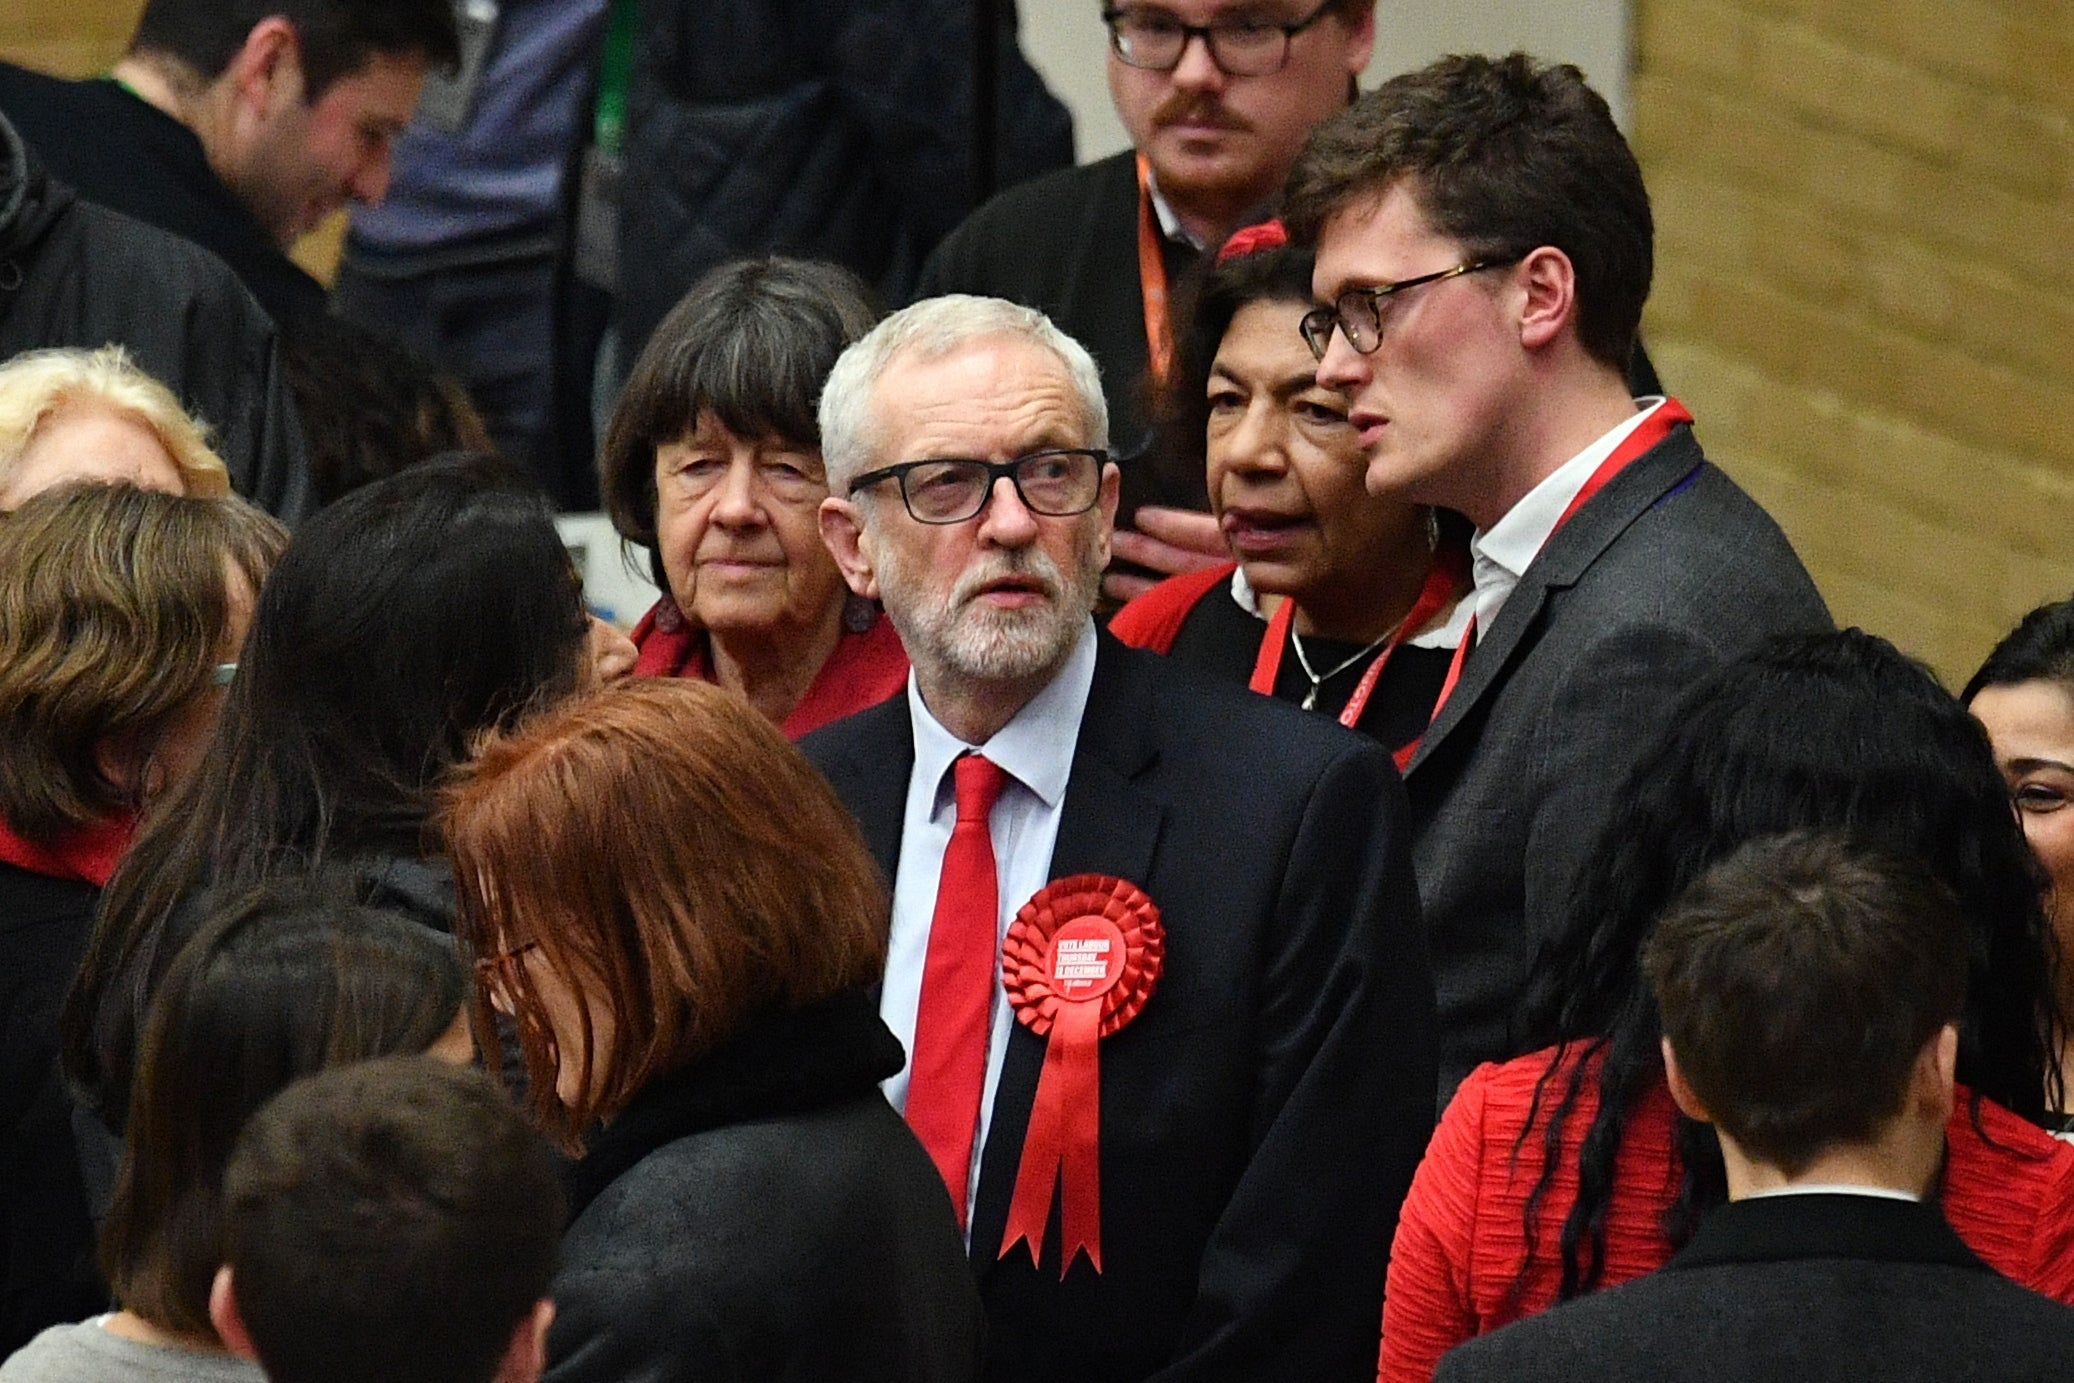 'Please stand down': Labour MPs tell Jeremy Corbyn to resign immediately after disastrous election night